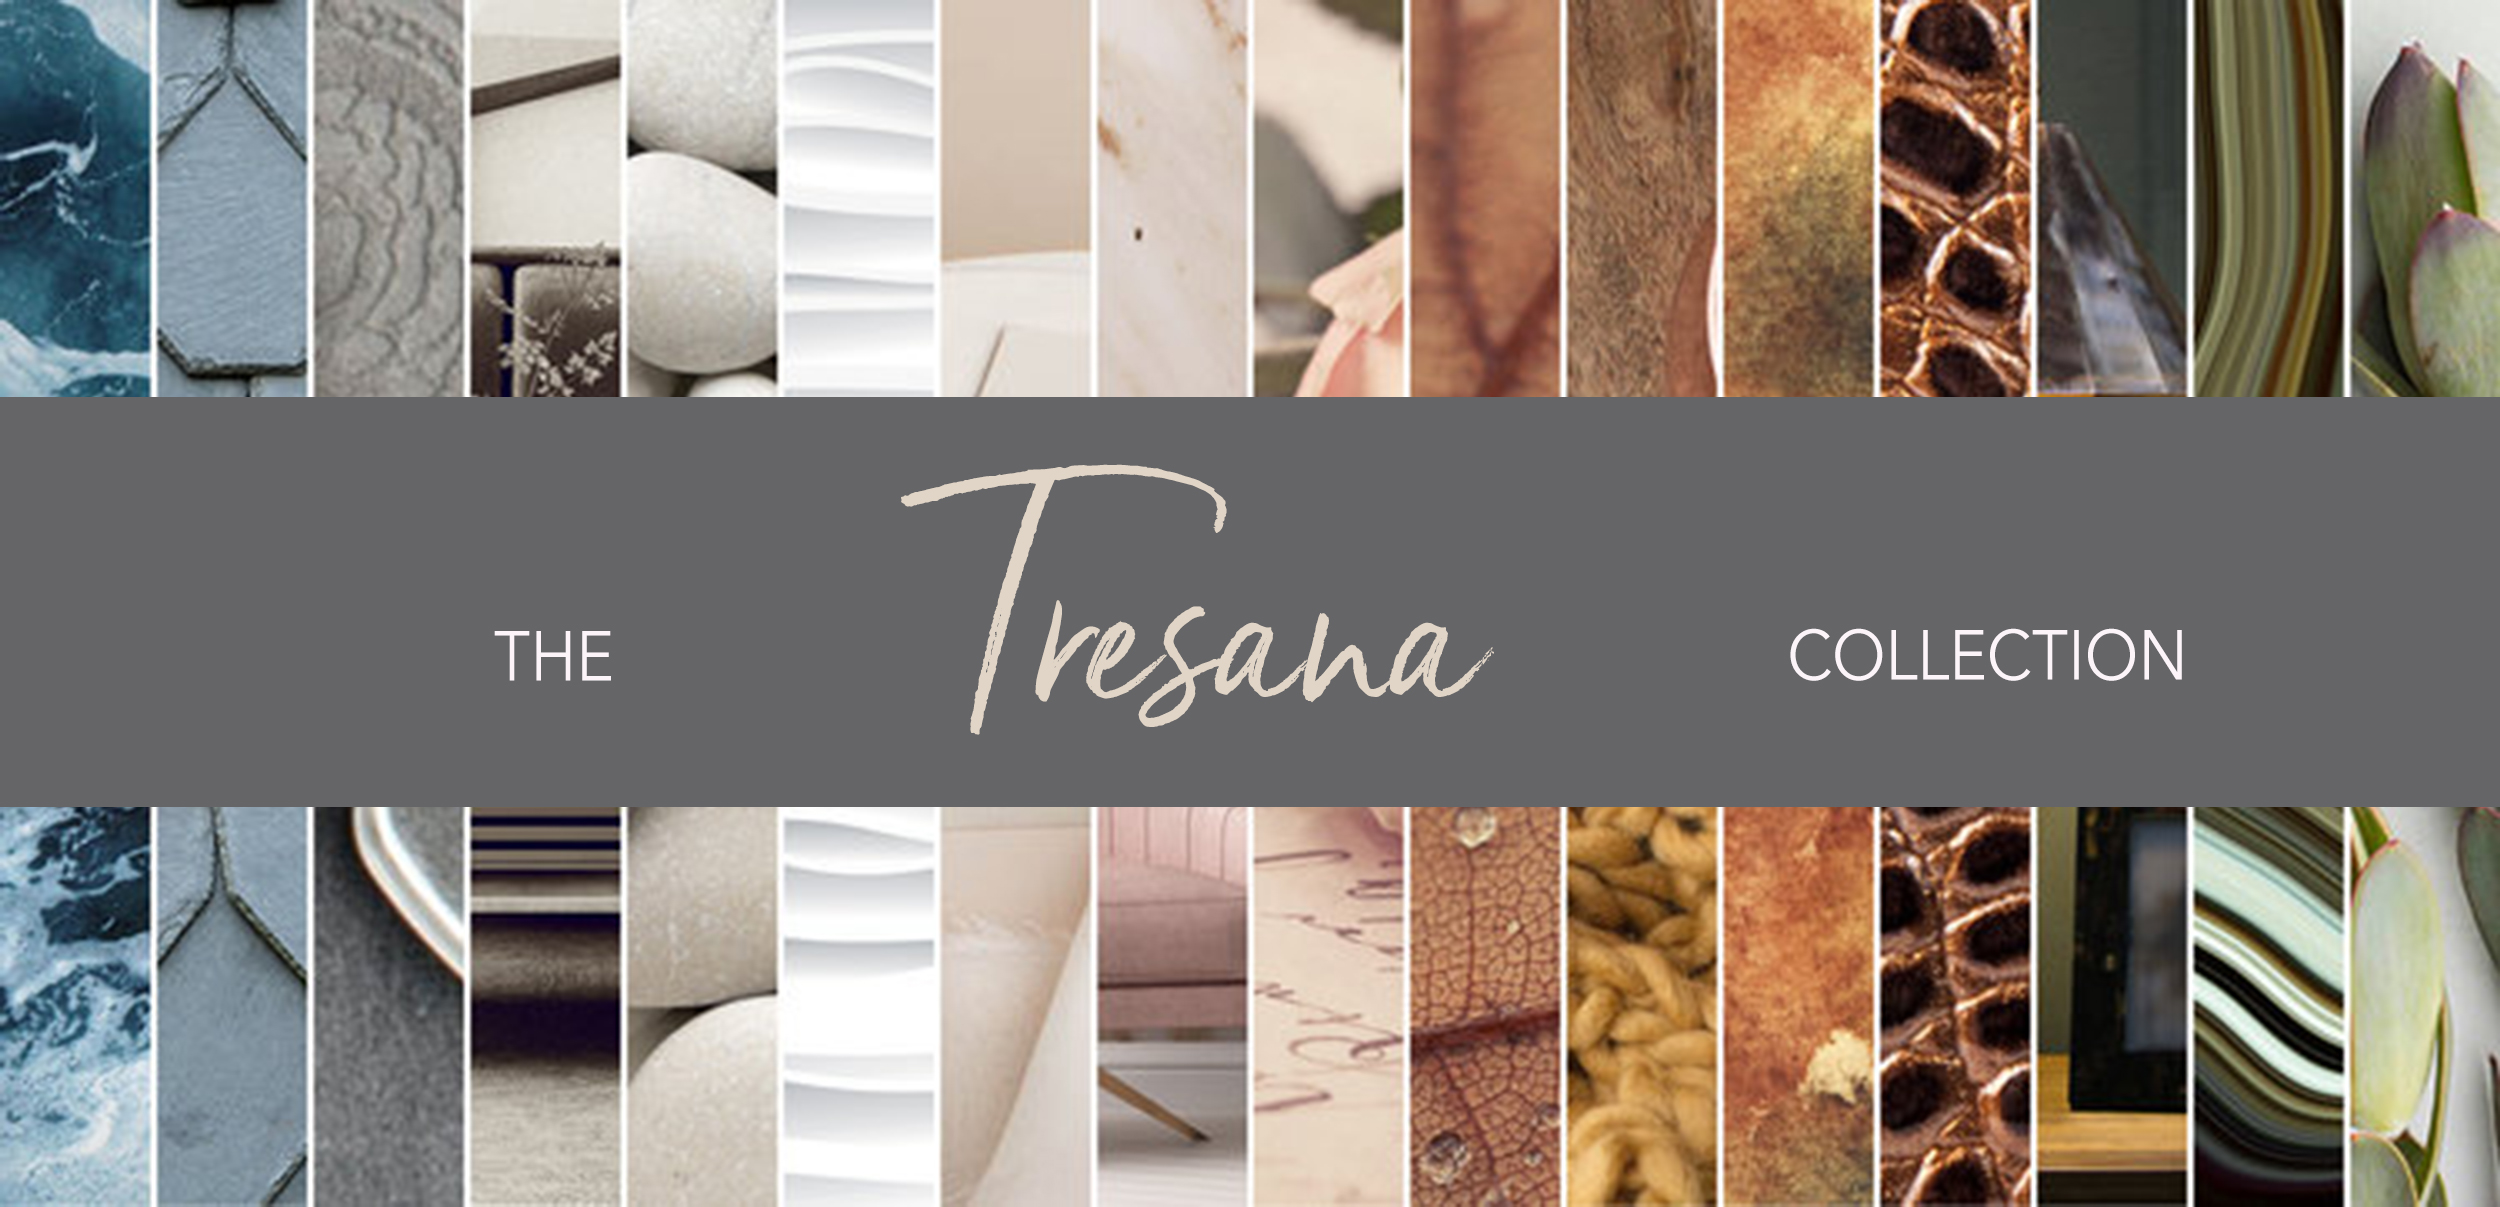 The Tresana Collection features five colour palettes to guide the consumers' decision making process.